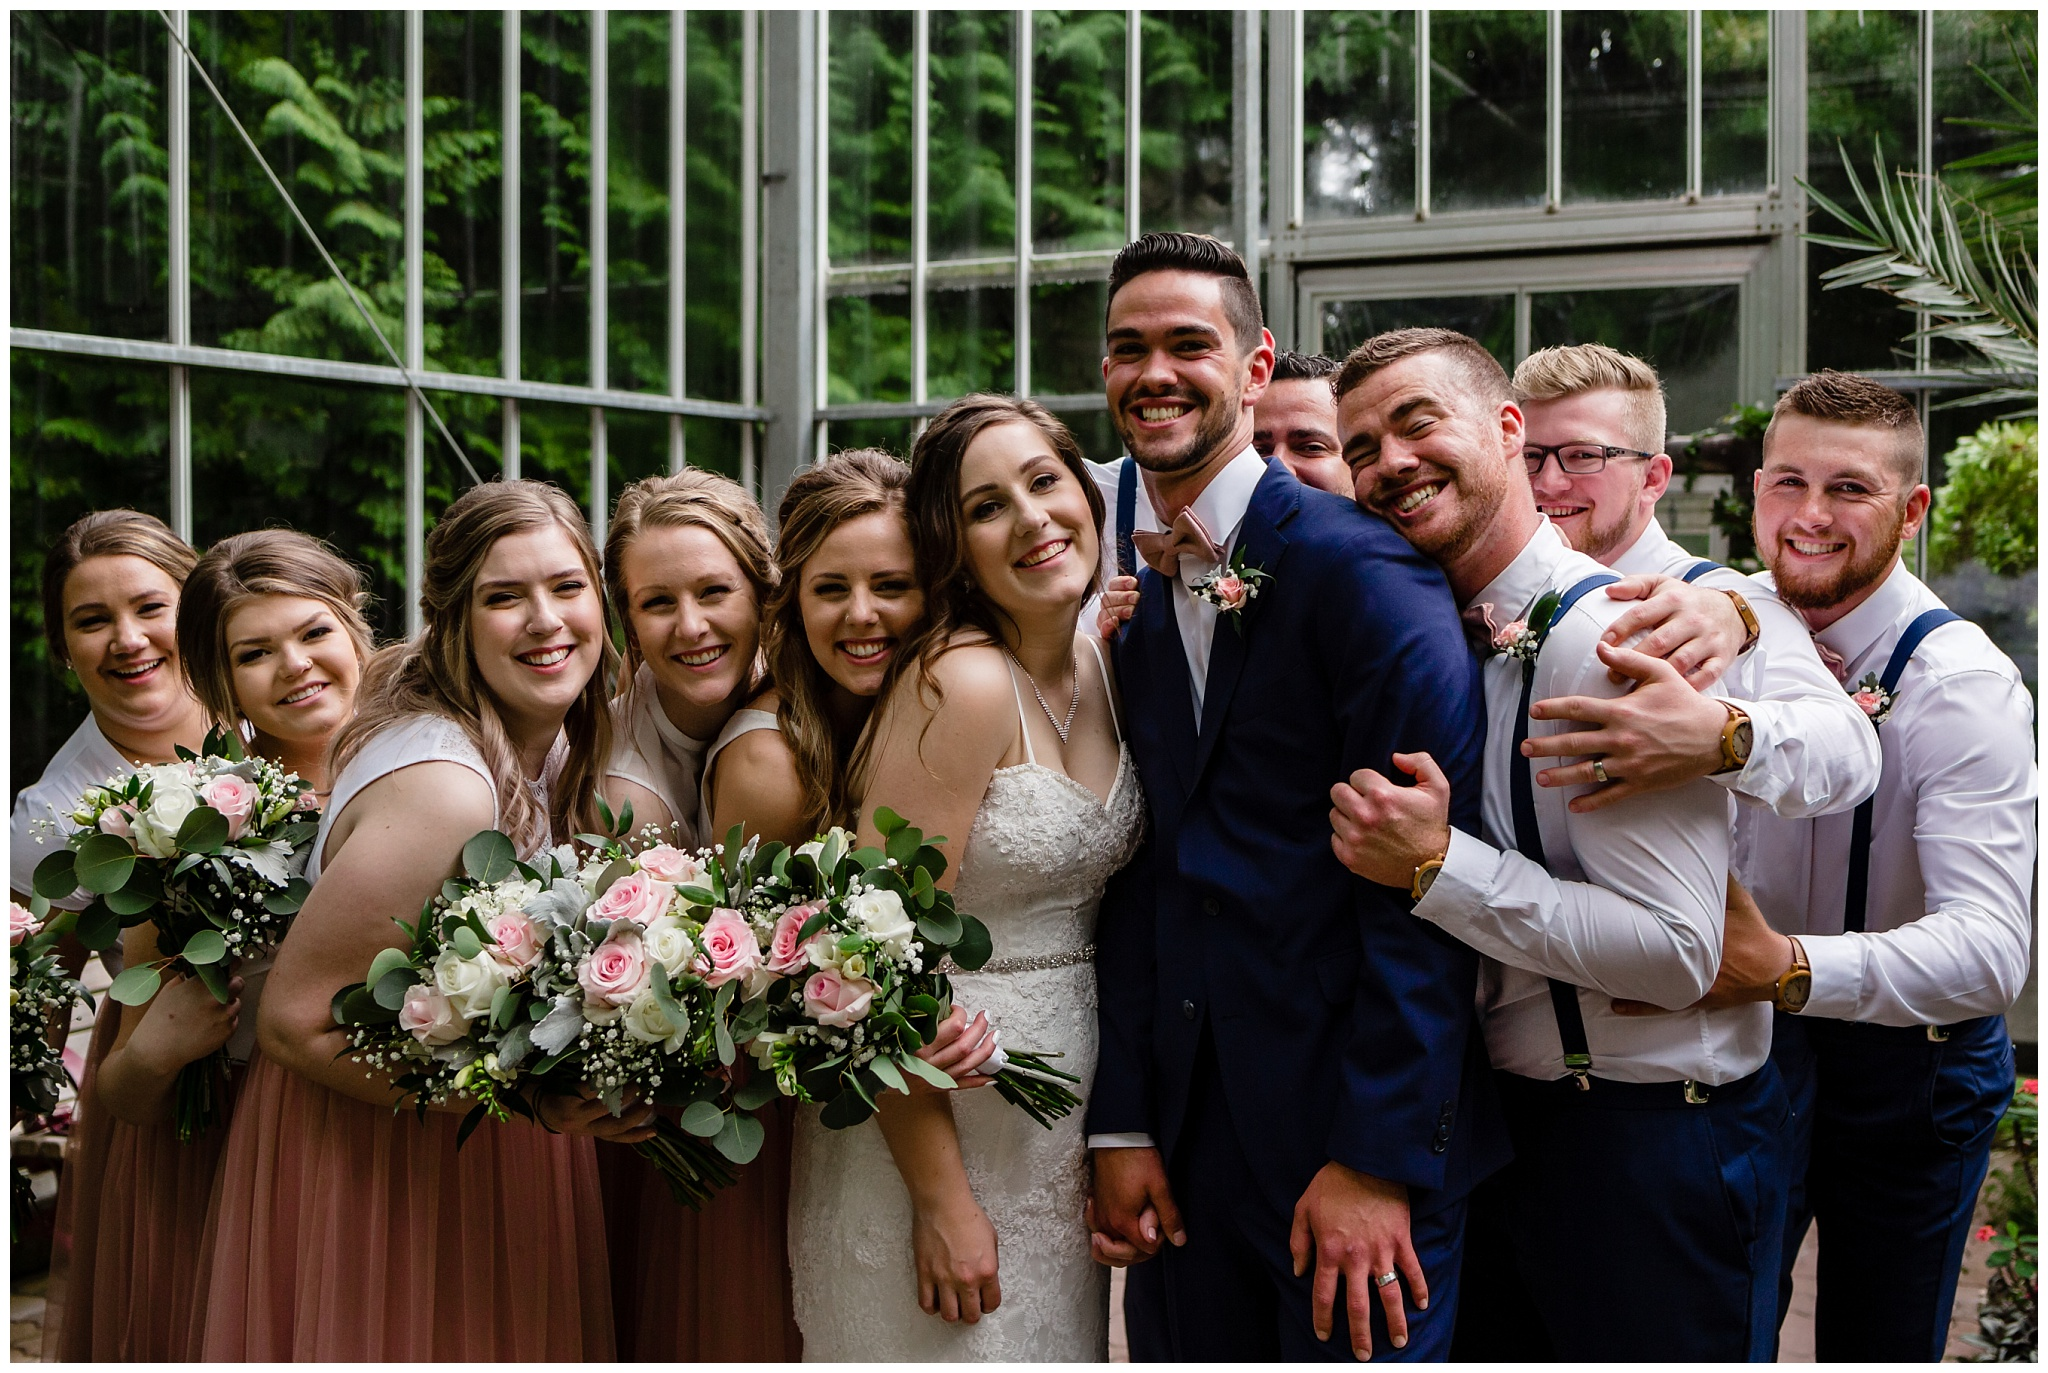 Cloverdale Canadian Reformed Church Wedding Sendall Garden Bride Groom Portraits Christian Couples Best Photographer in Langley Surrey British Columbia_0036.jpg